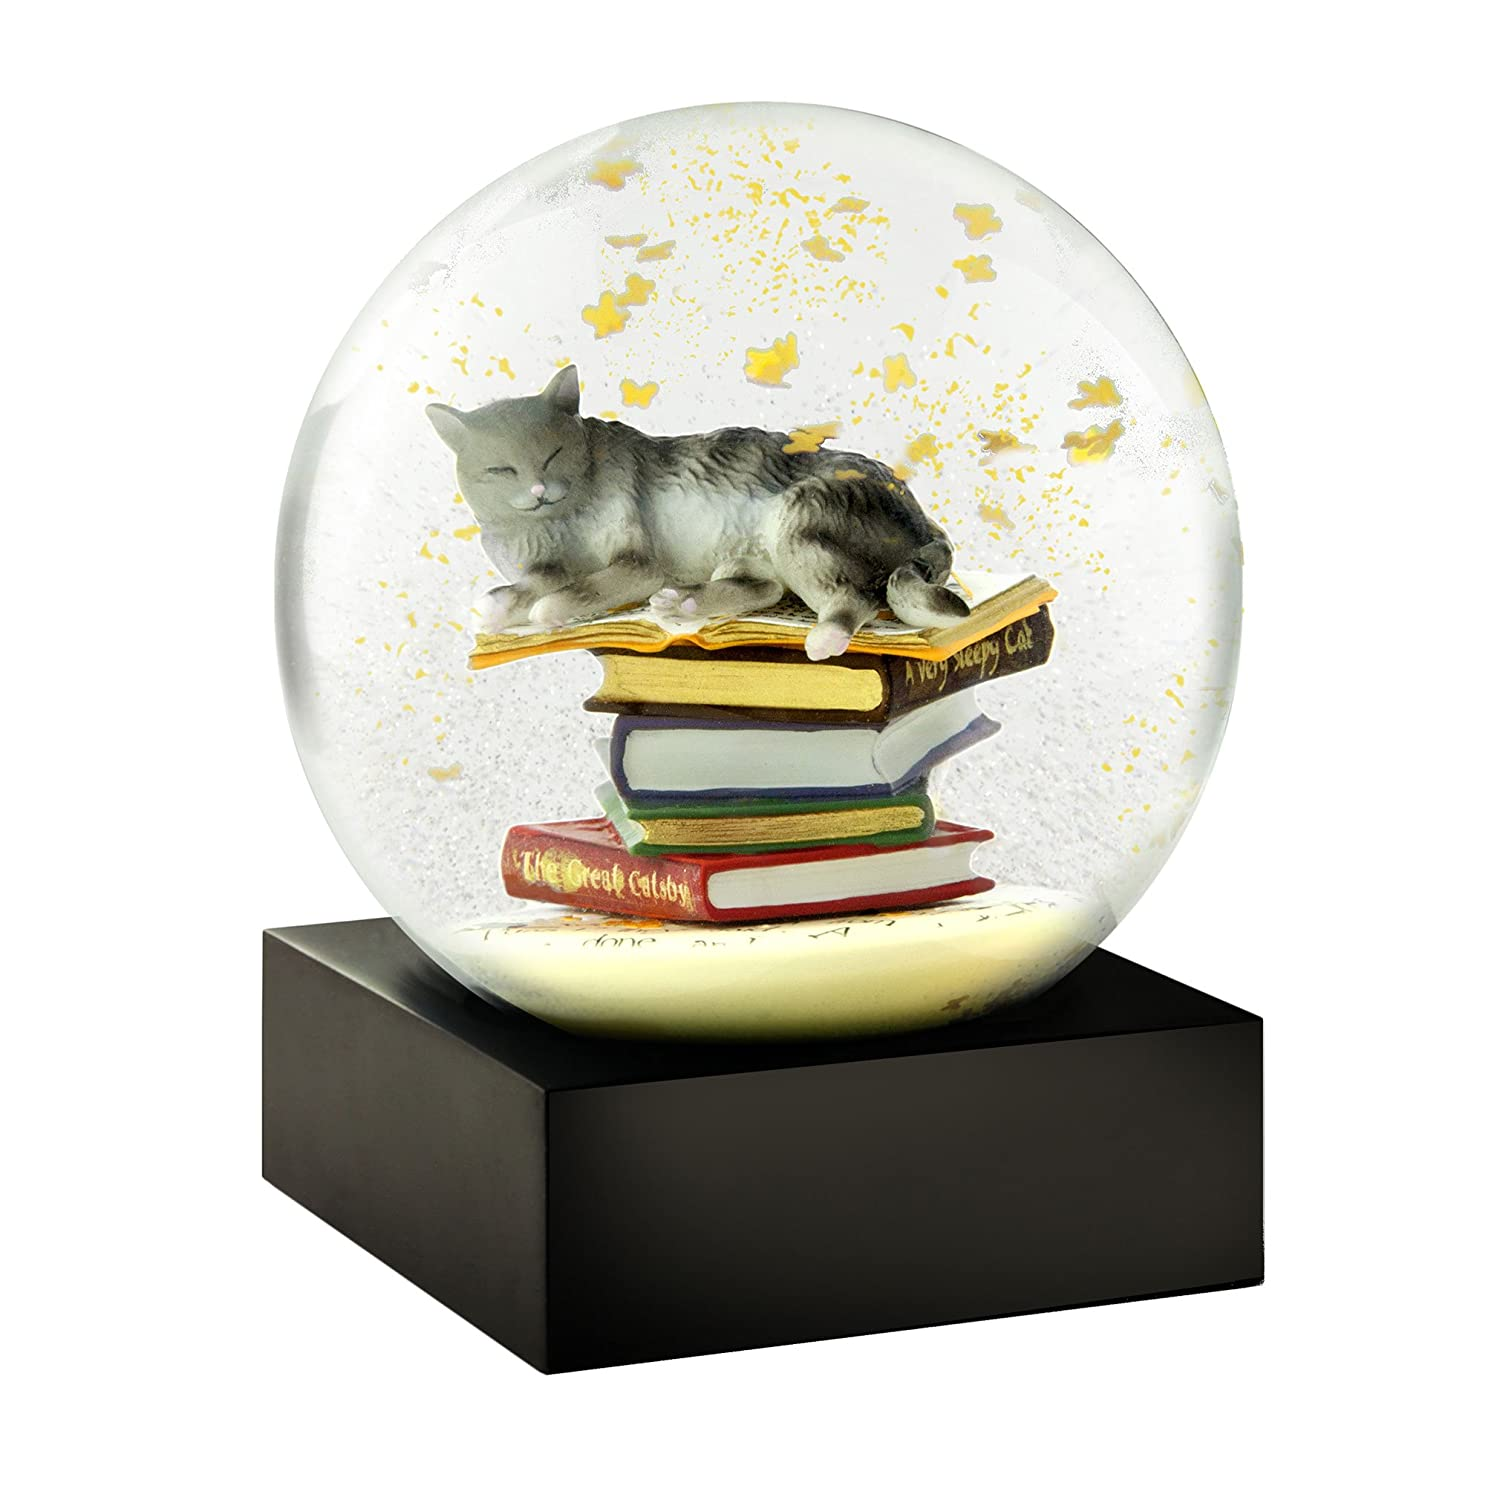 Enchanting Whimsical And Cool Snow Globes Xpressionportal